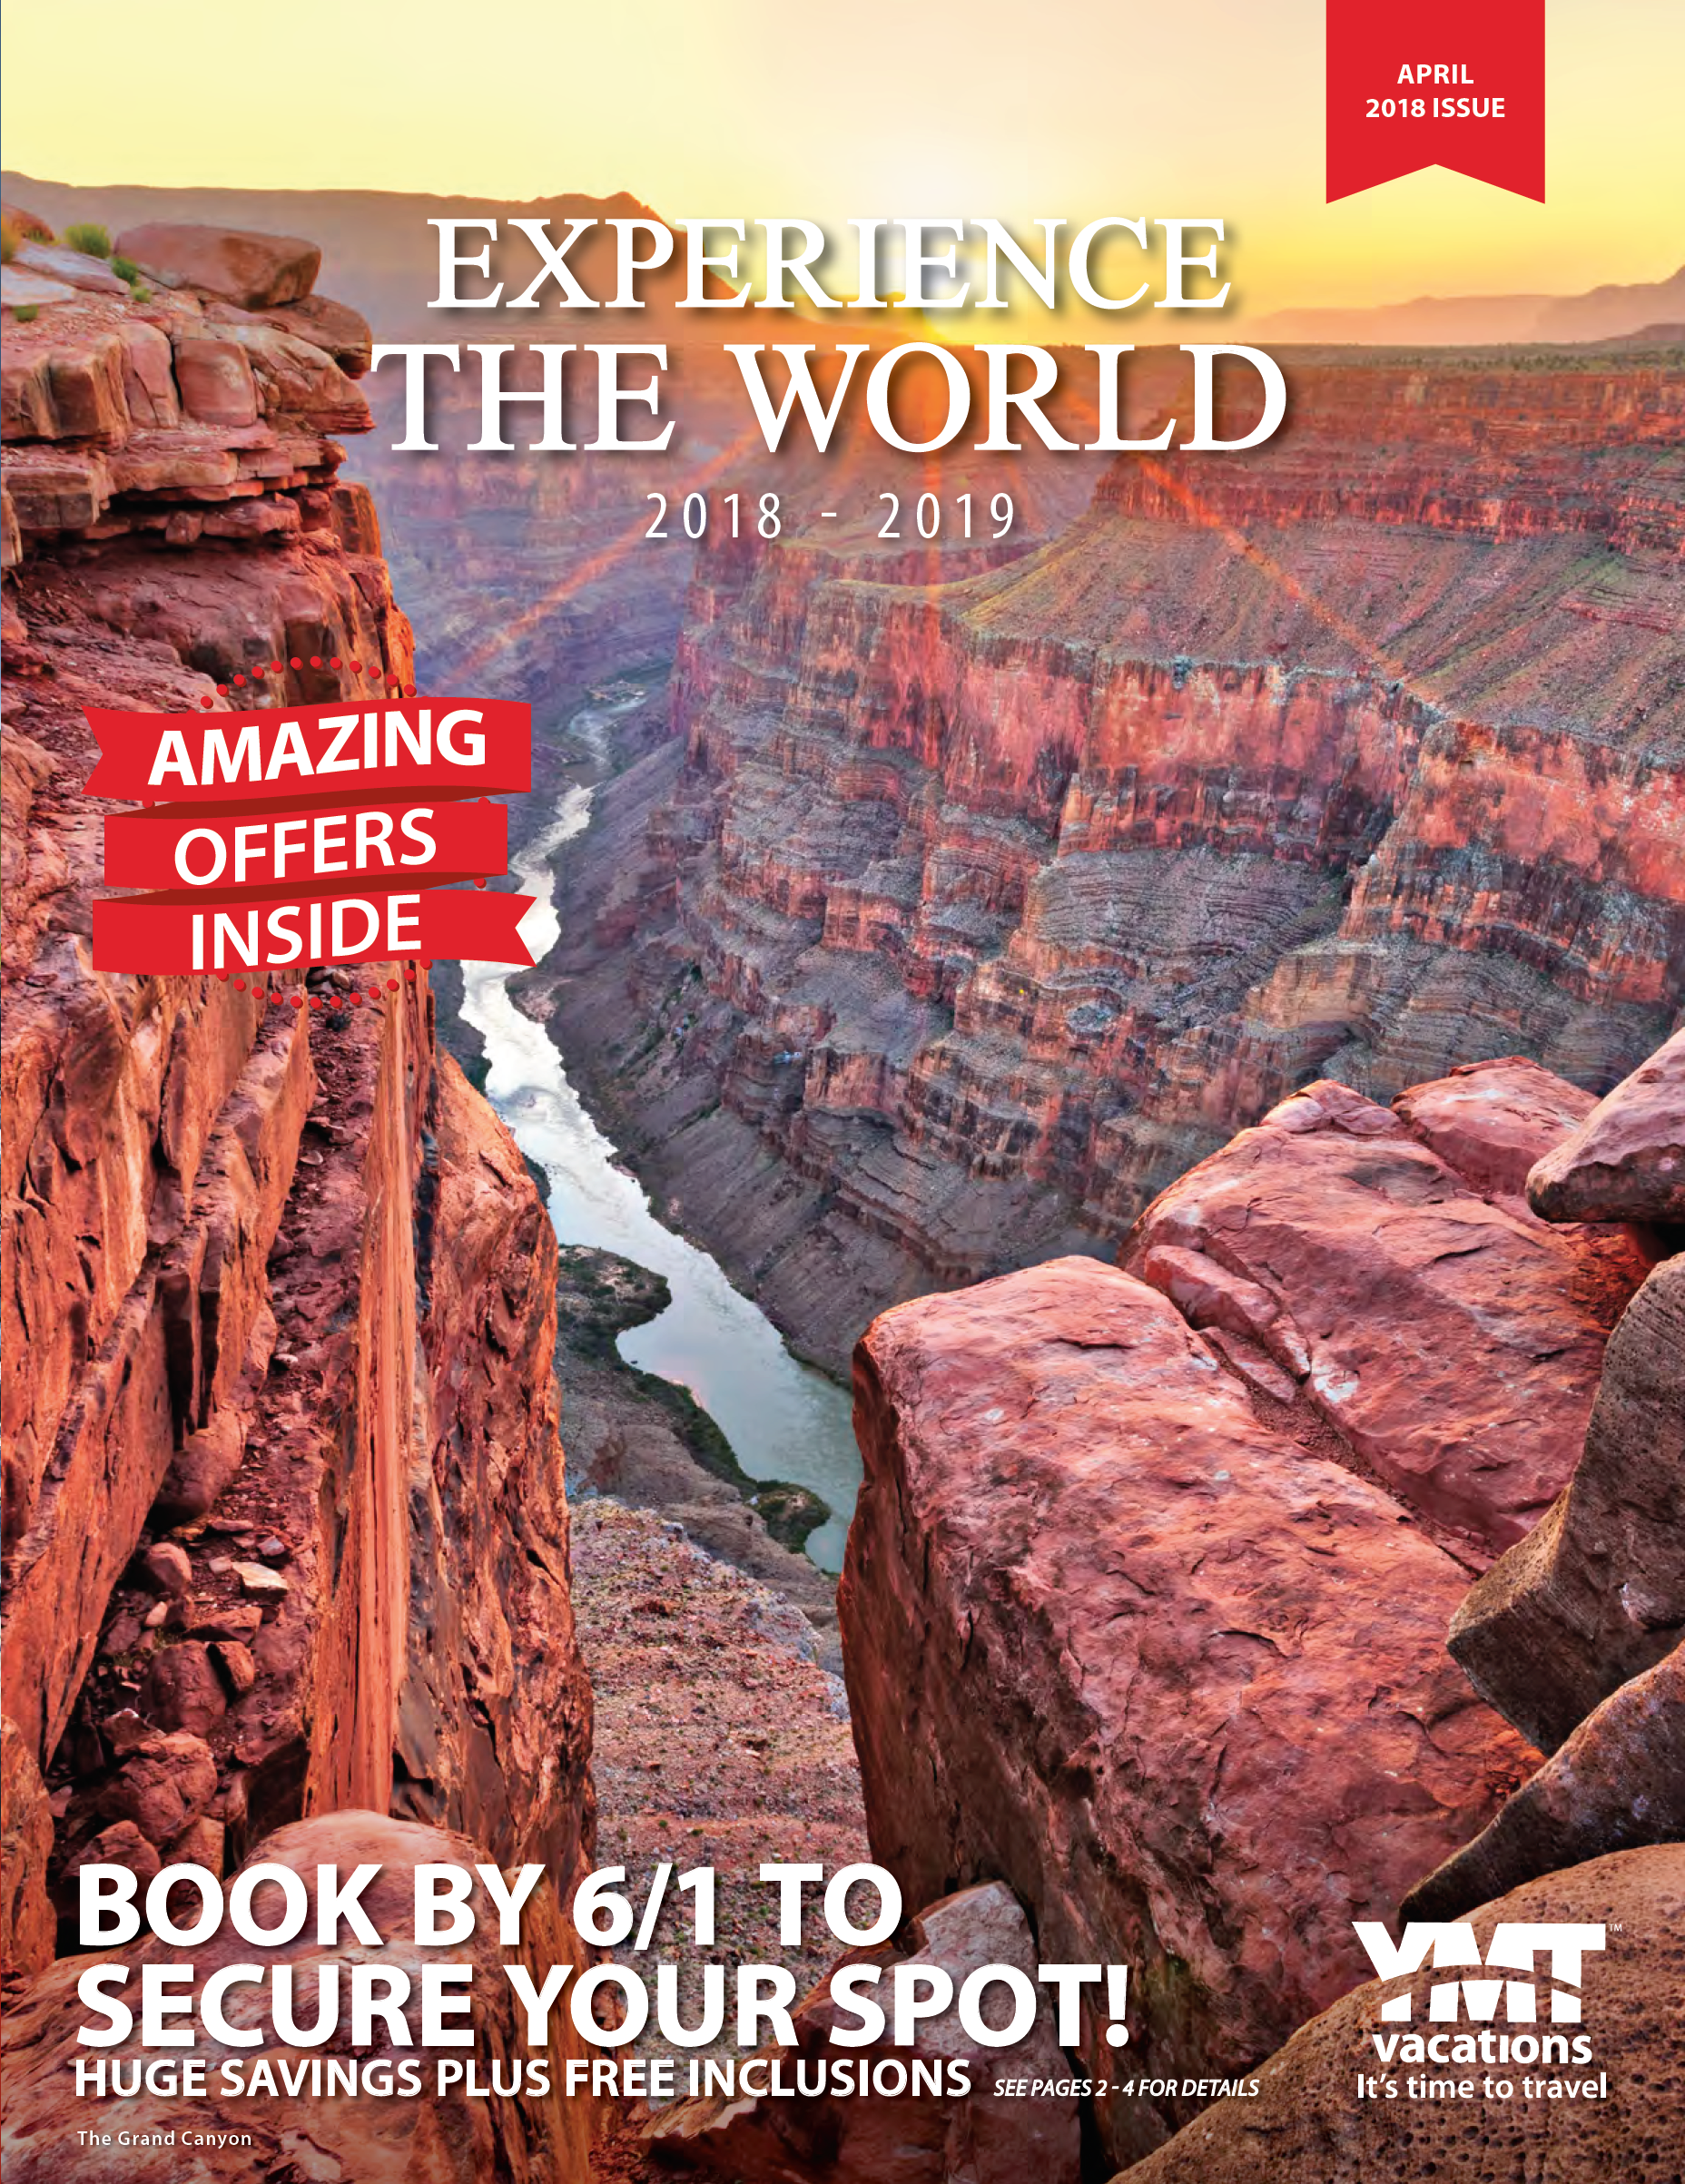 ymt vacations experience the world brochure